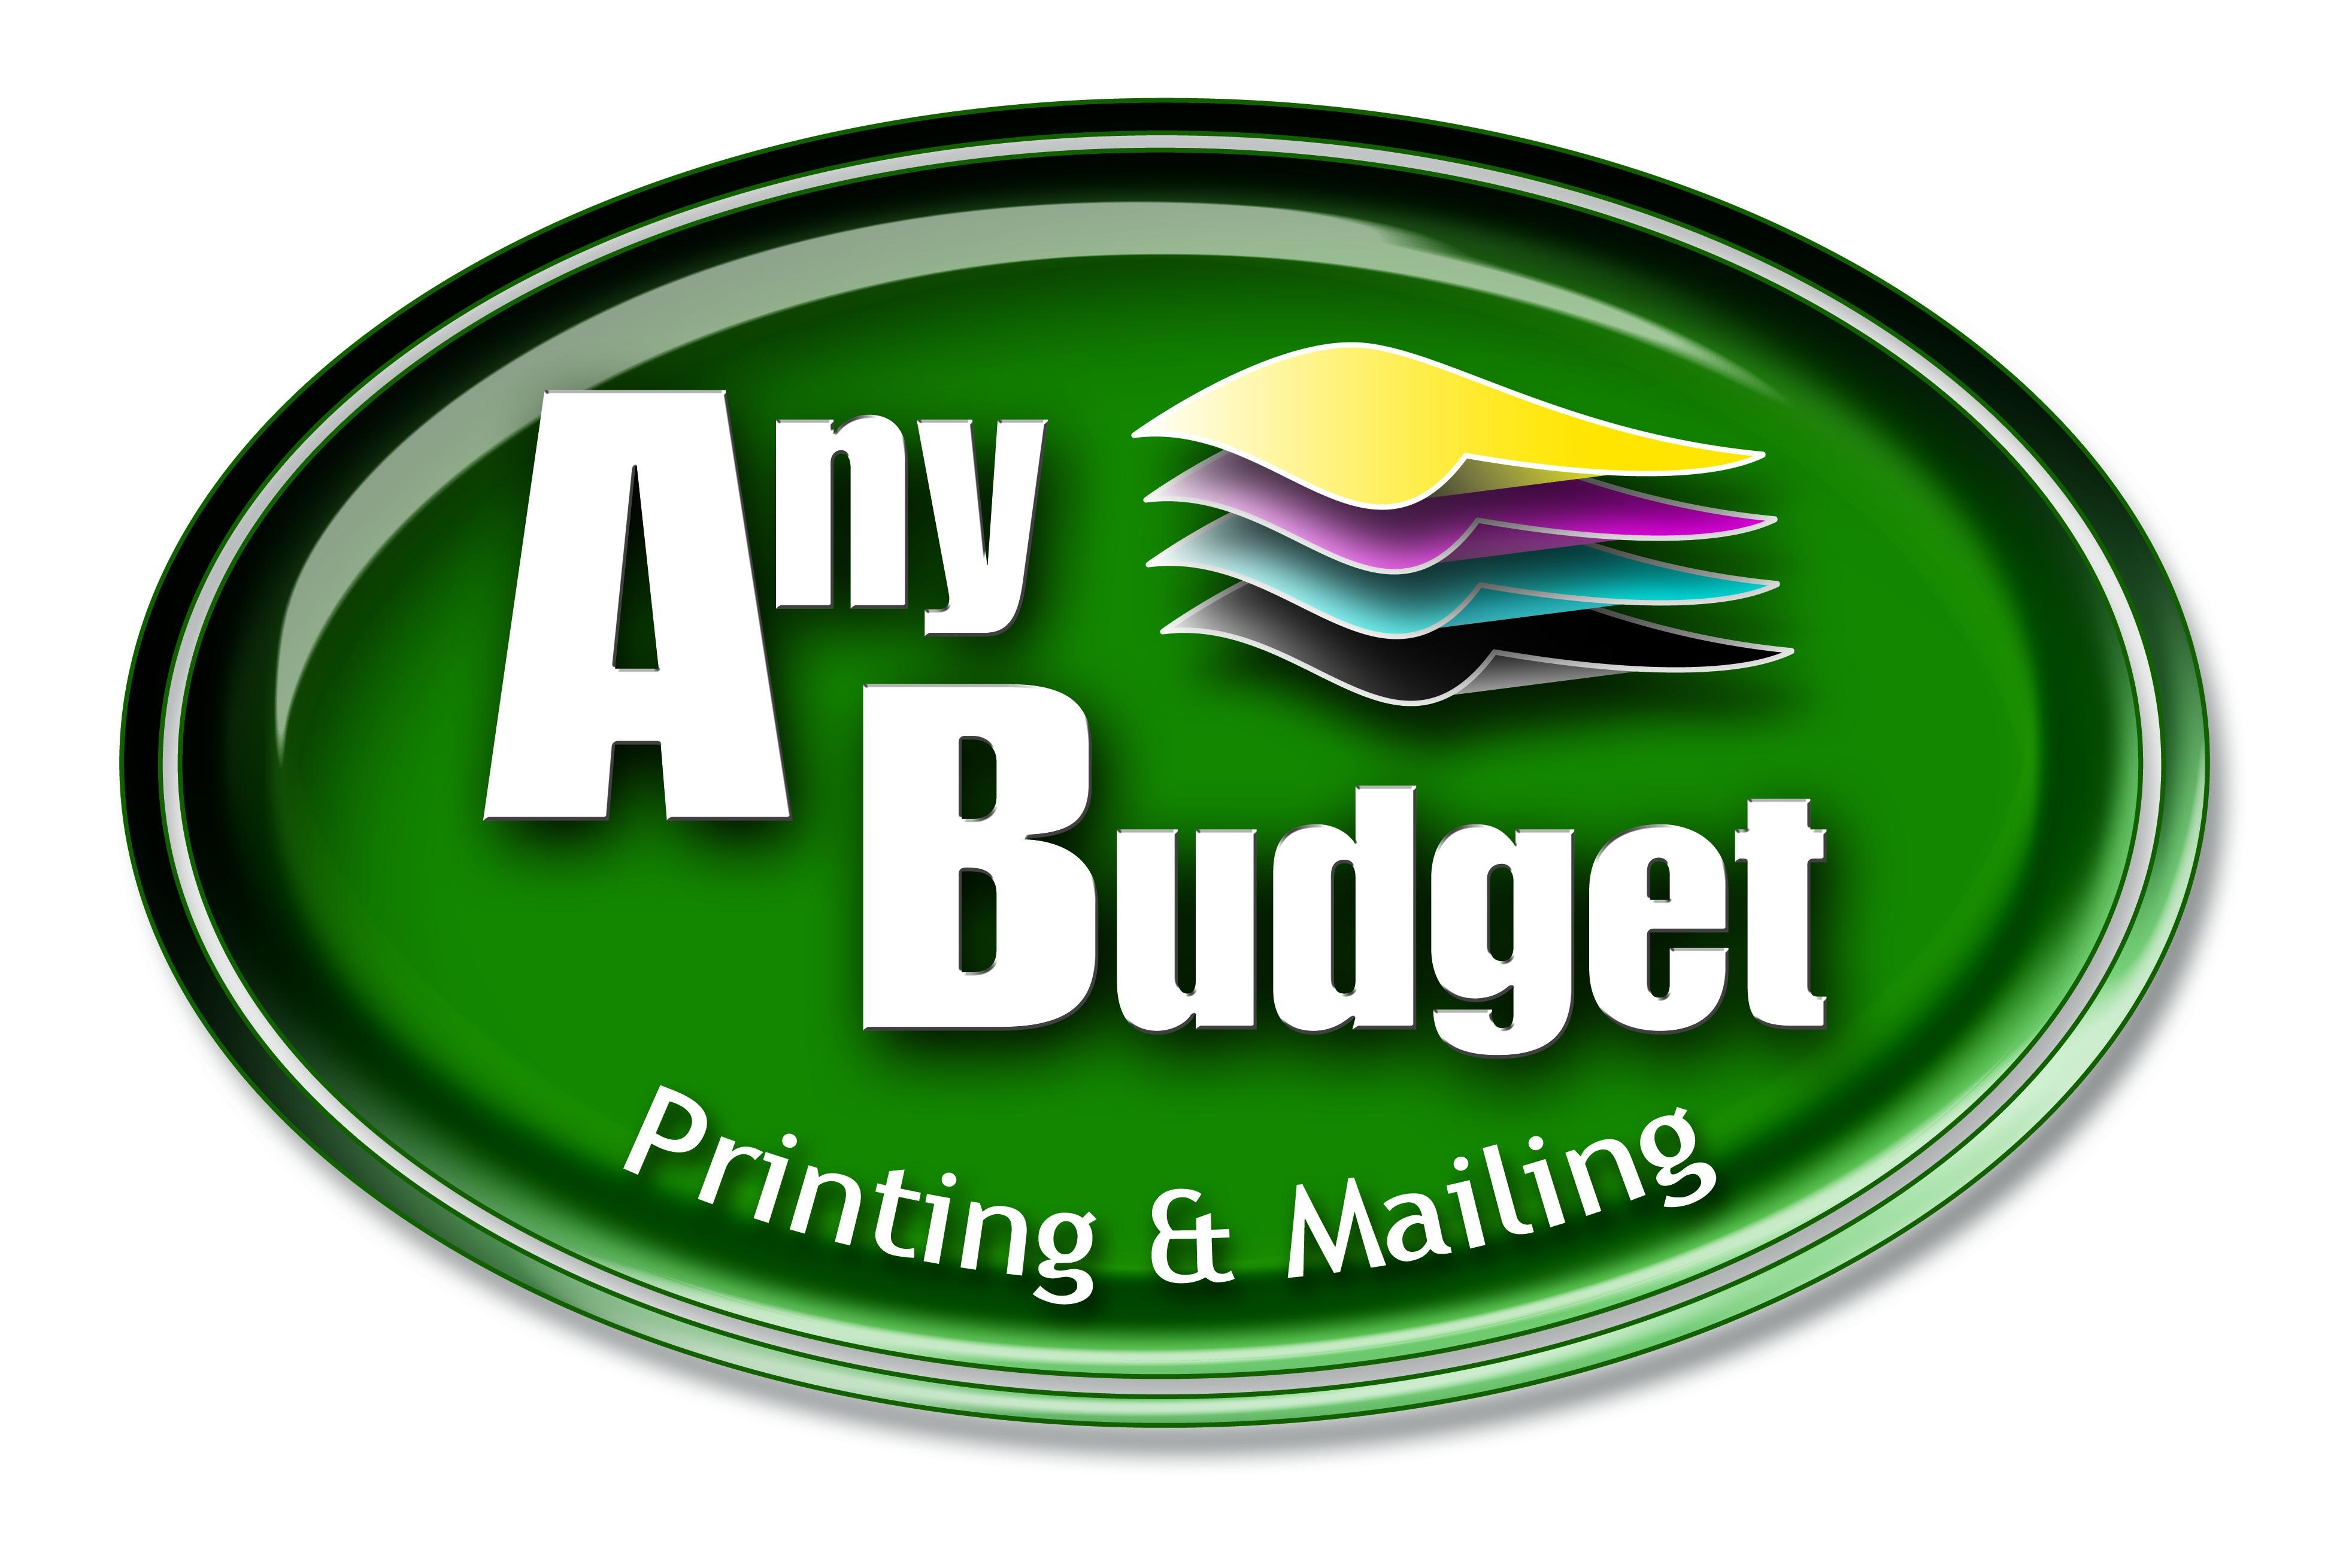 Any Budget Printing & Mailing image 2